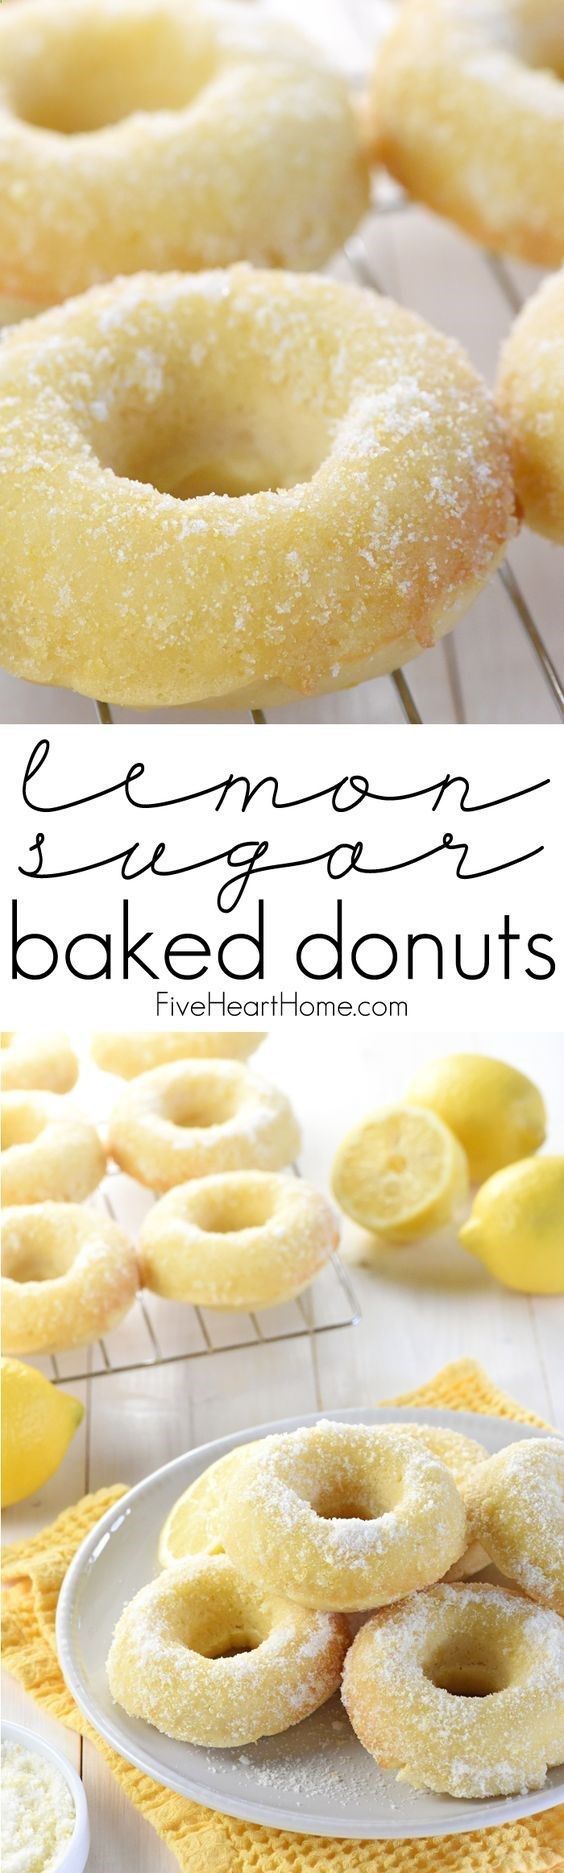 Lemon Sugar Baked Donuts light citrusy and generously coated in a crunchy lemon-zest infused sugar...the perfect sunny treat for breakfast or dessert!